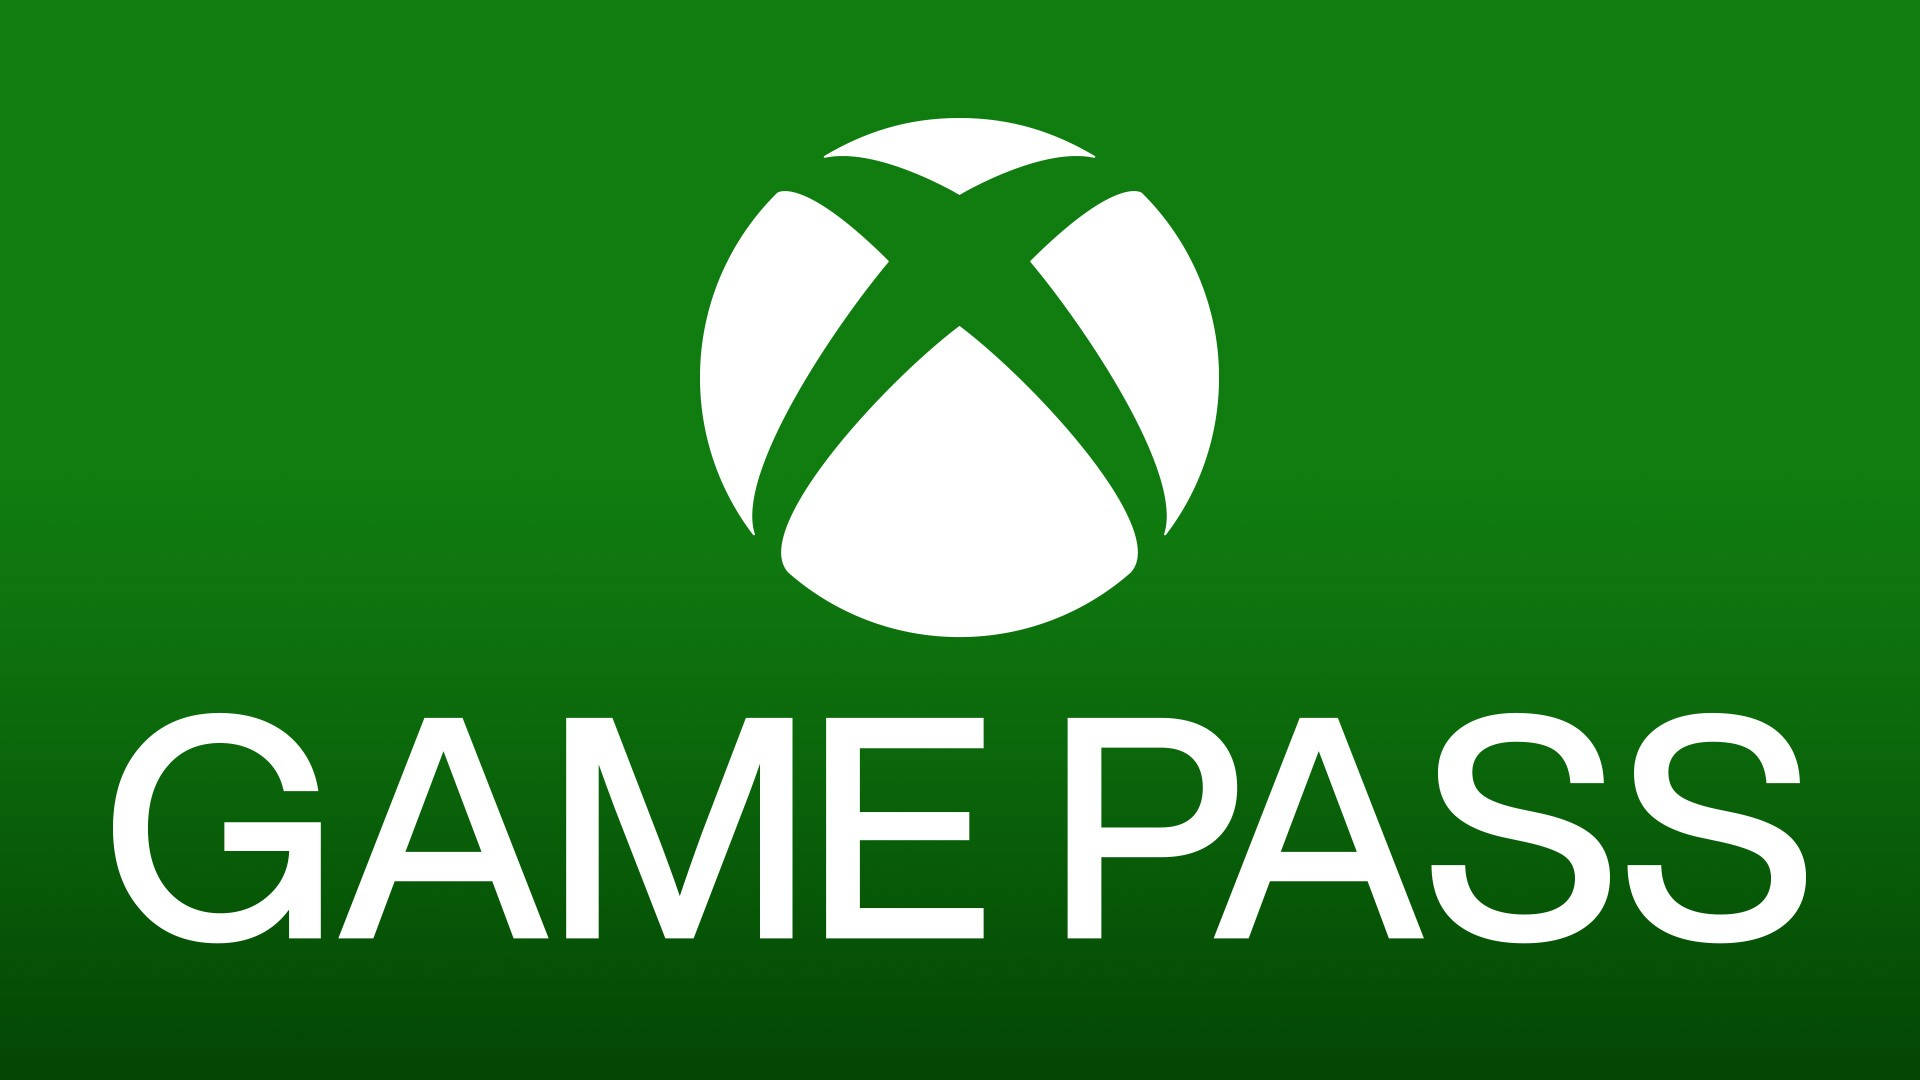 Game Pass Key Art